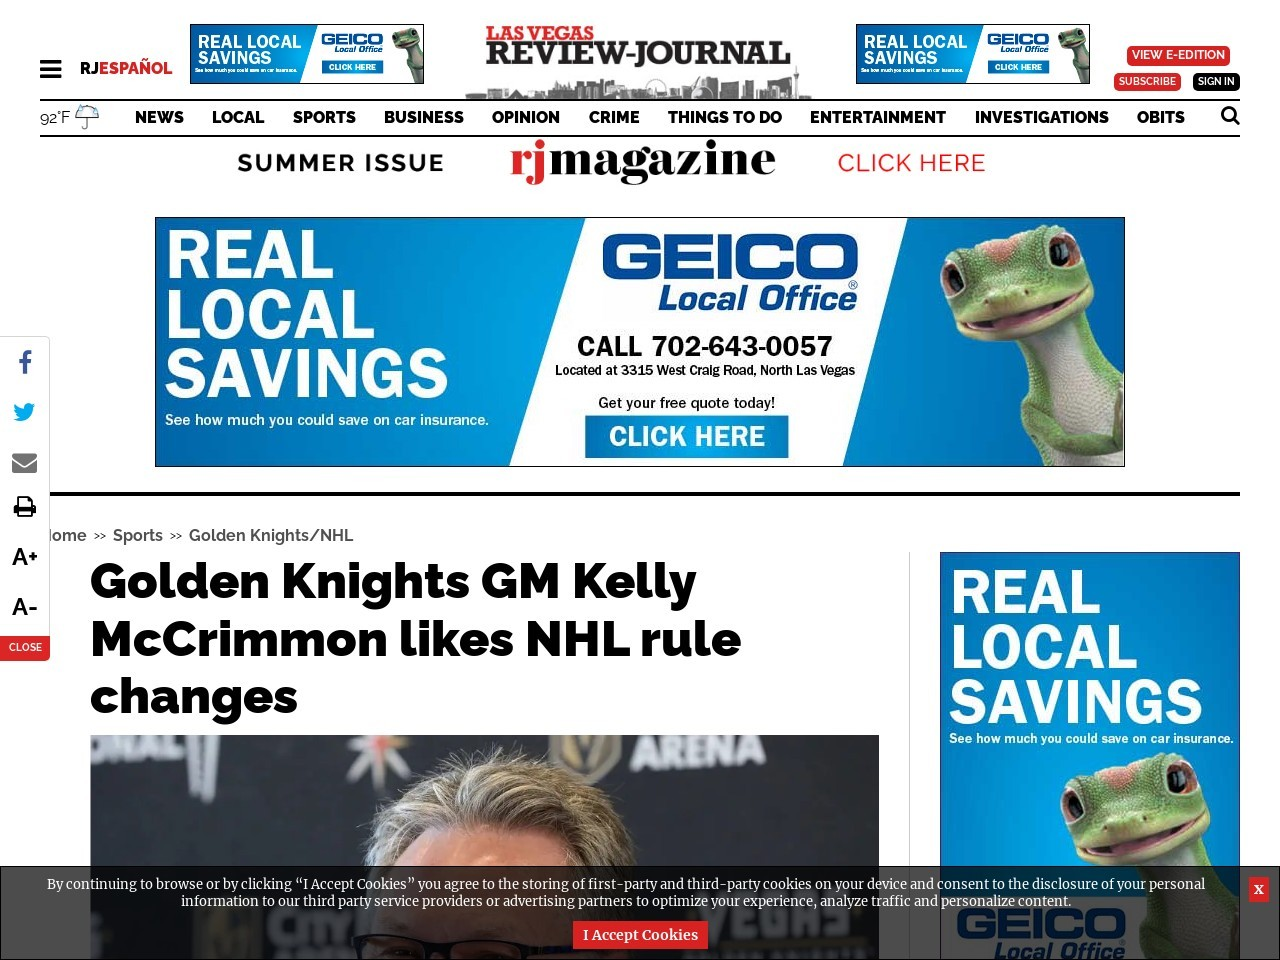 Golden Knights GM Kelly McCrimmon likes NHL rule changes